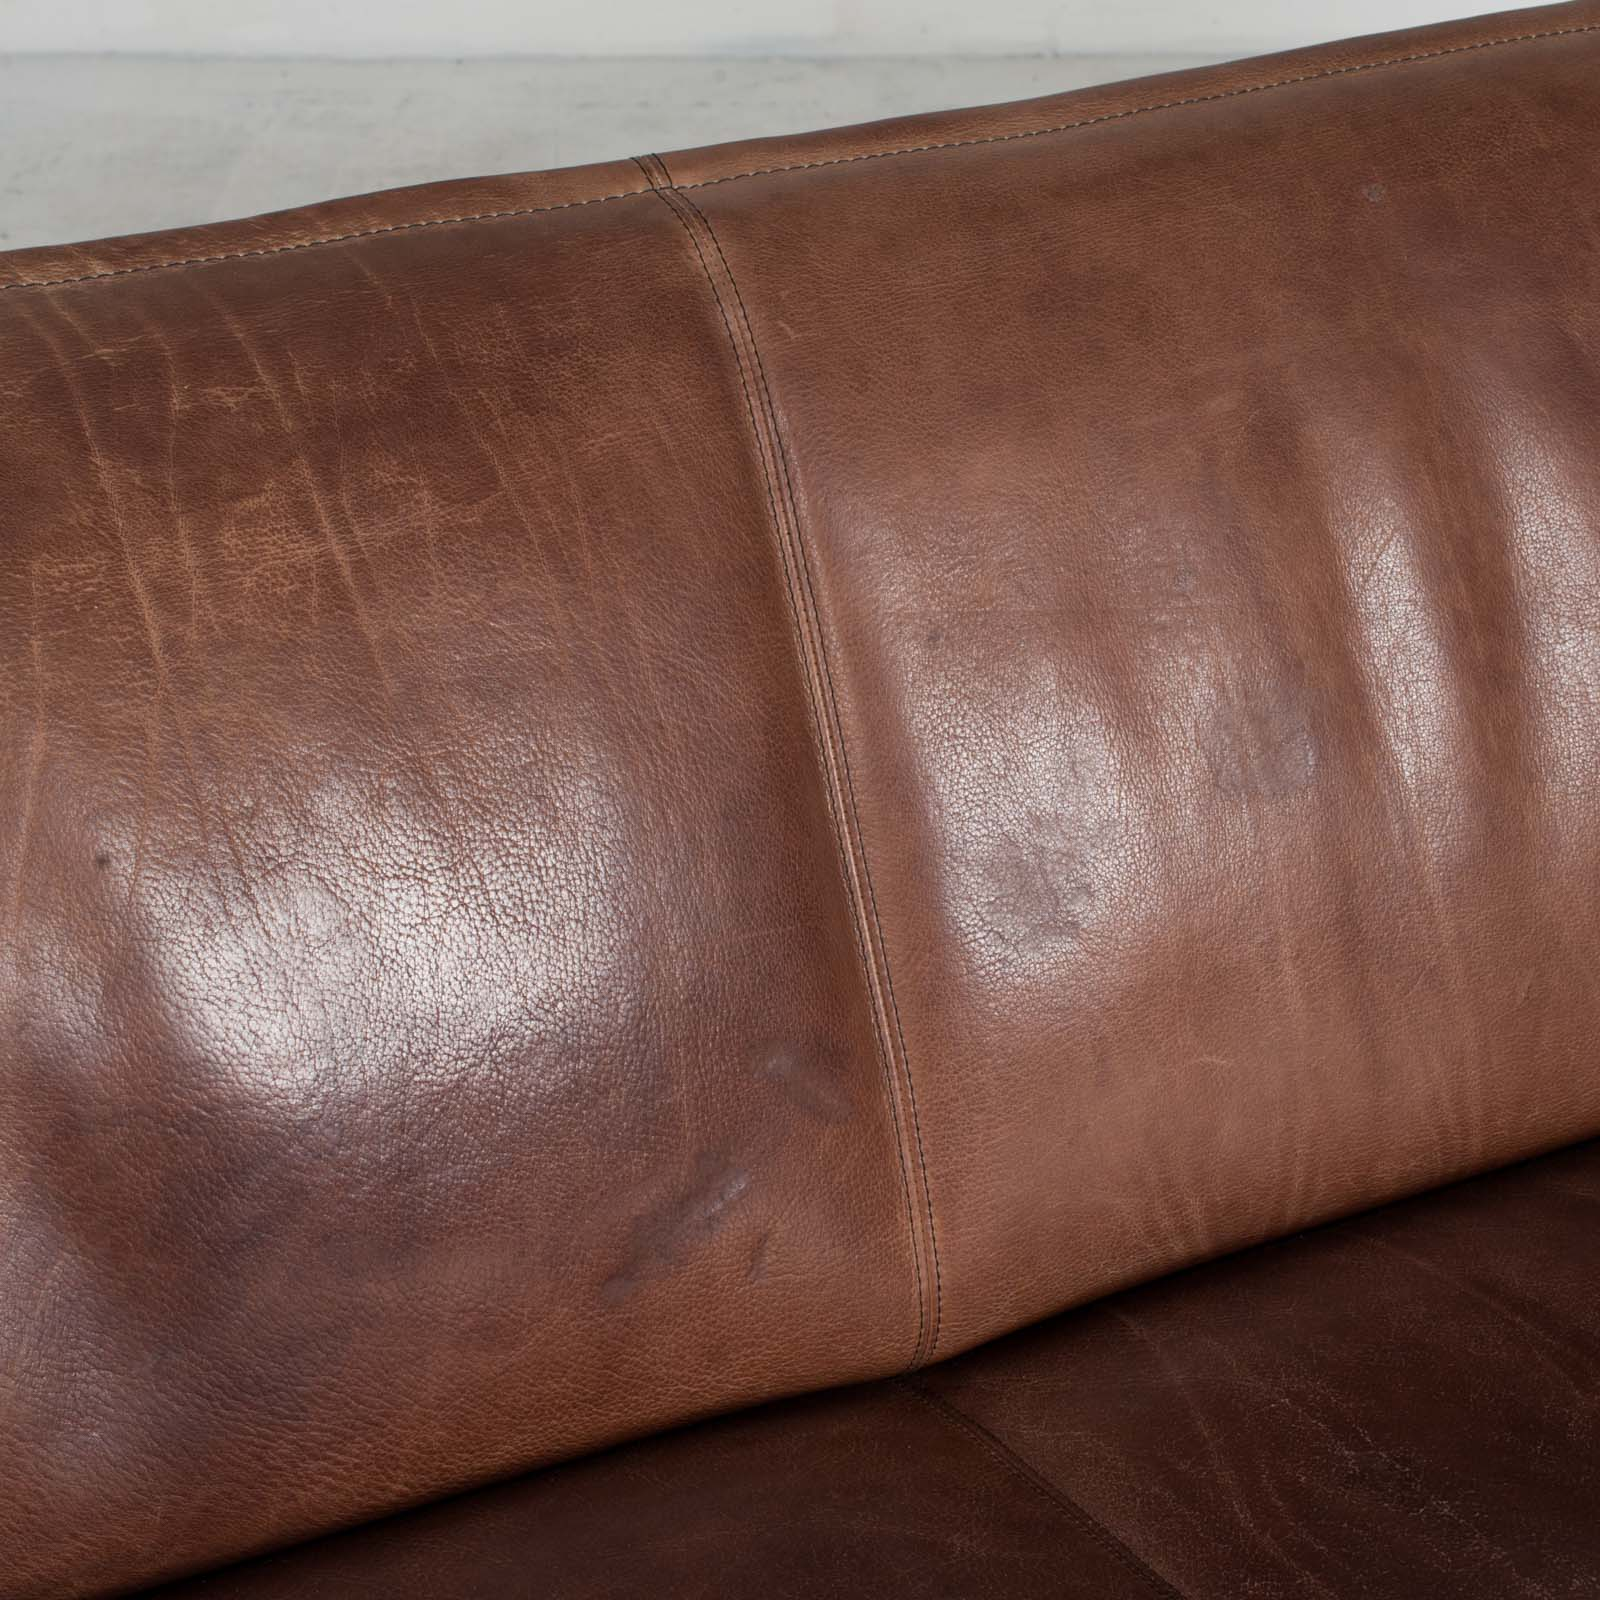 3 Seat Sofa By De Sede In Tan Neck Leather 1960s Denmark 07